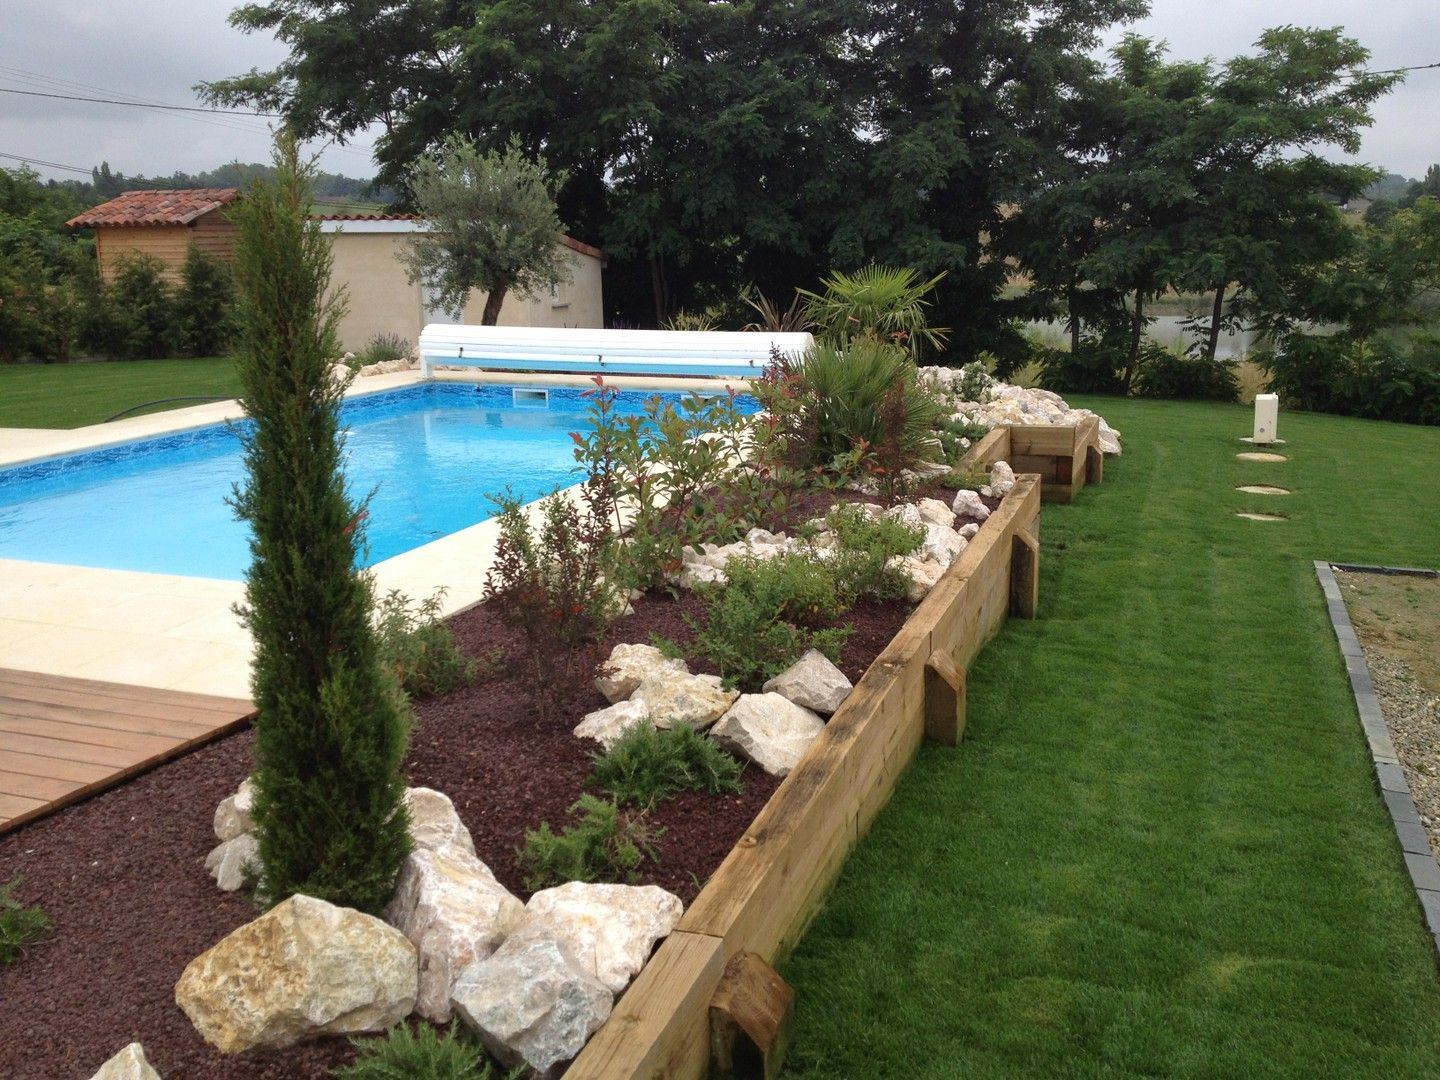 Am nagement tour de piscine pools pinterest swimming for Amenagement exterieur jardin zen